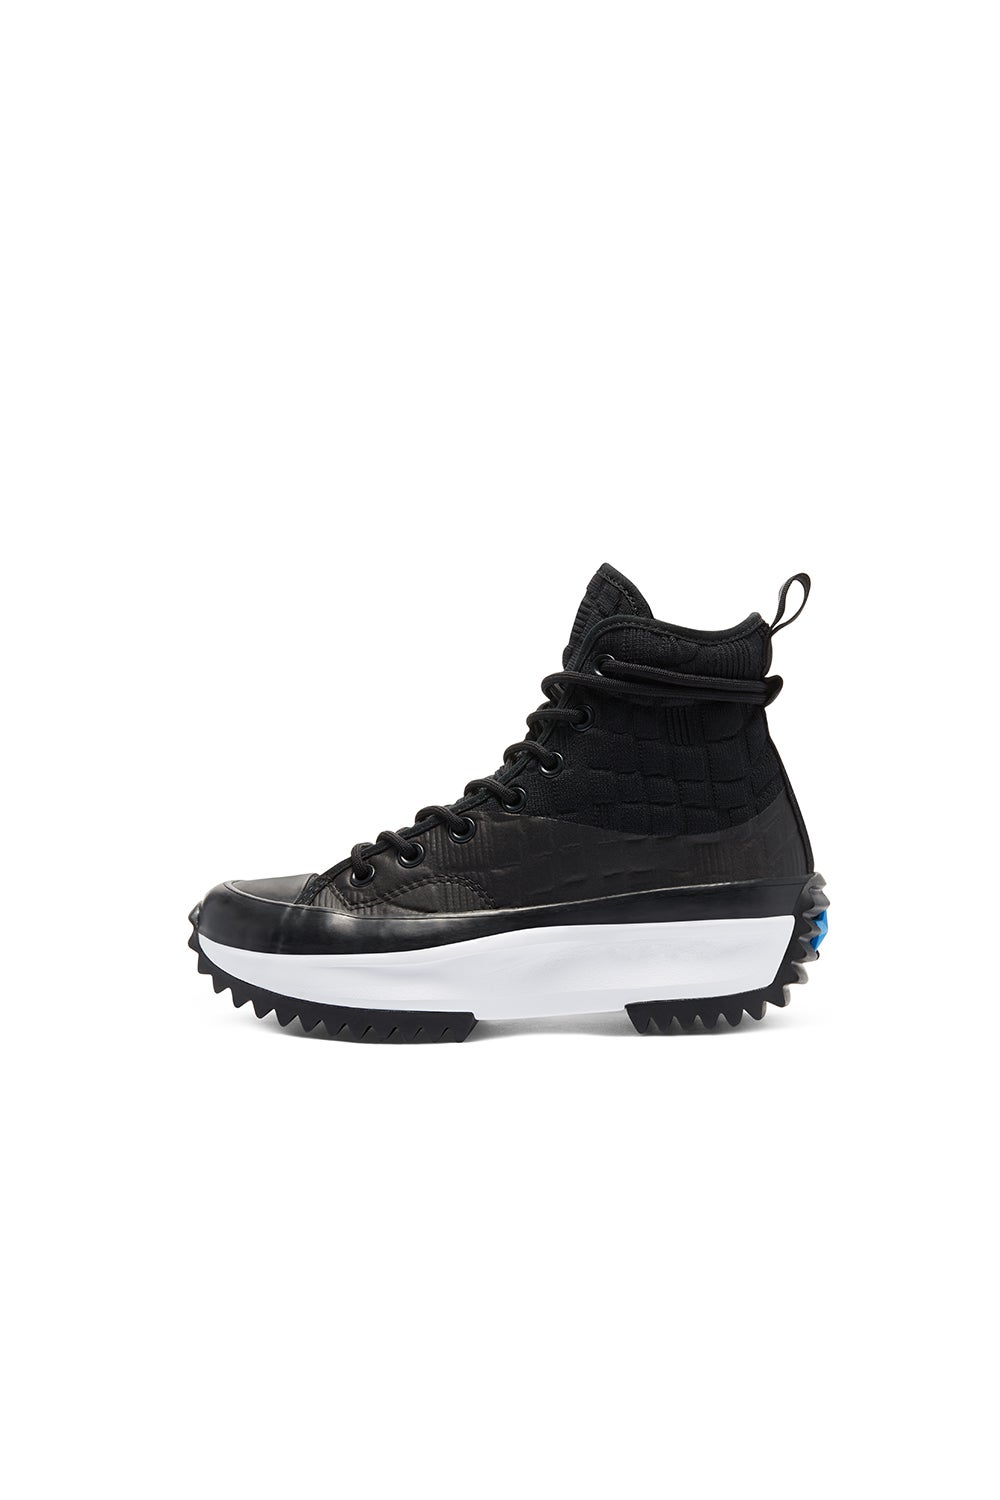 Converse Run Star Hike Digital Explorer High Top Black